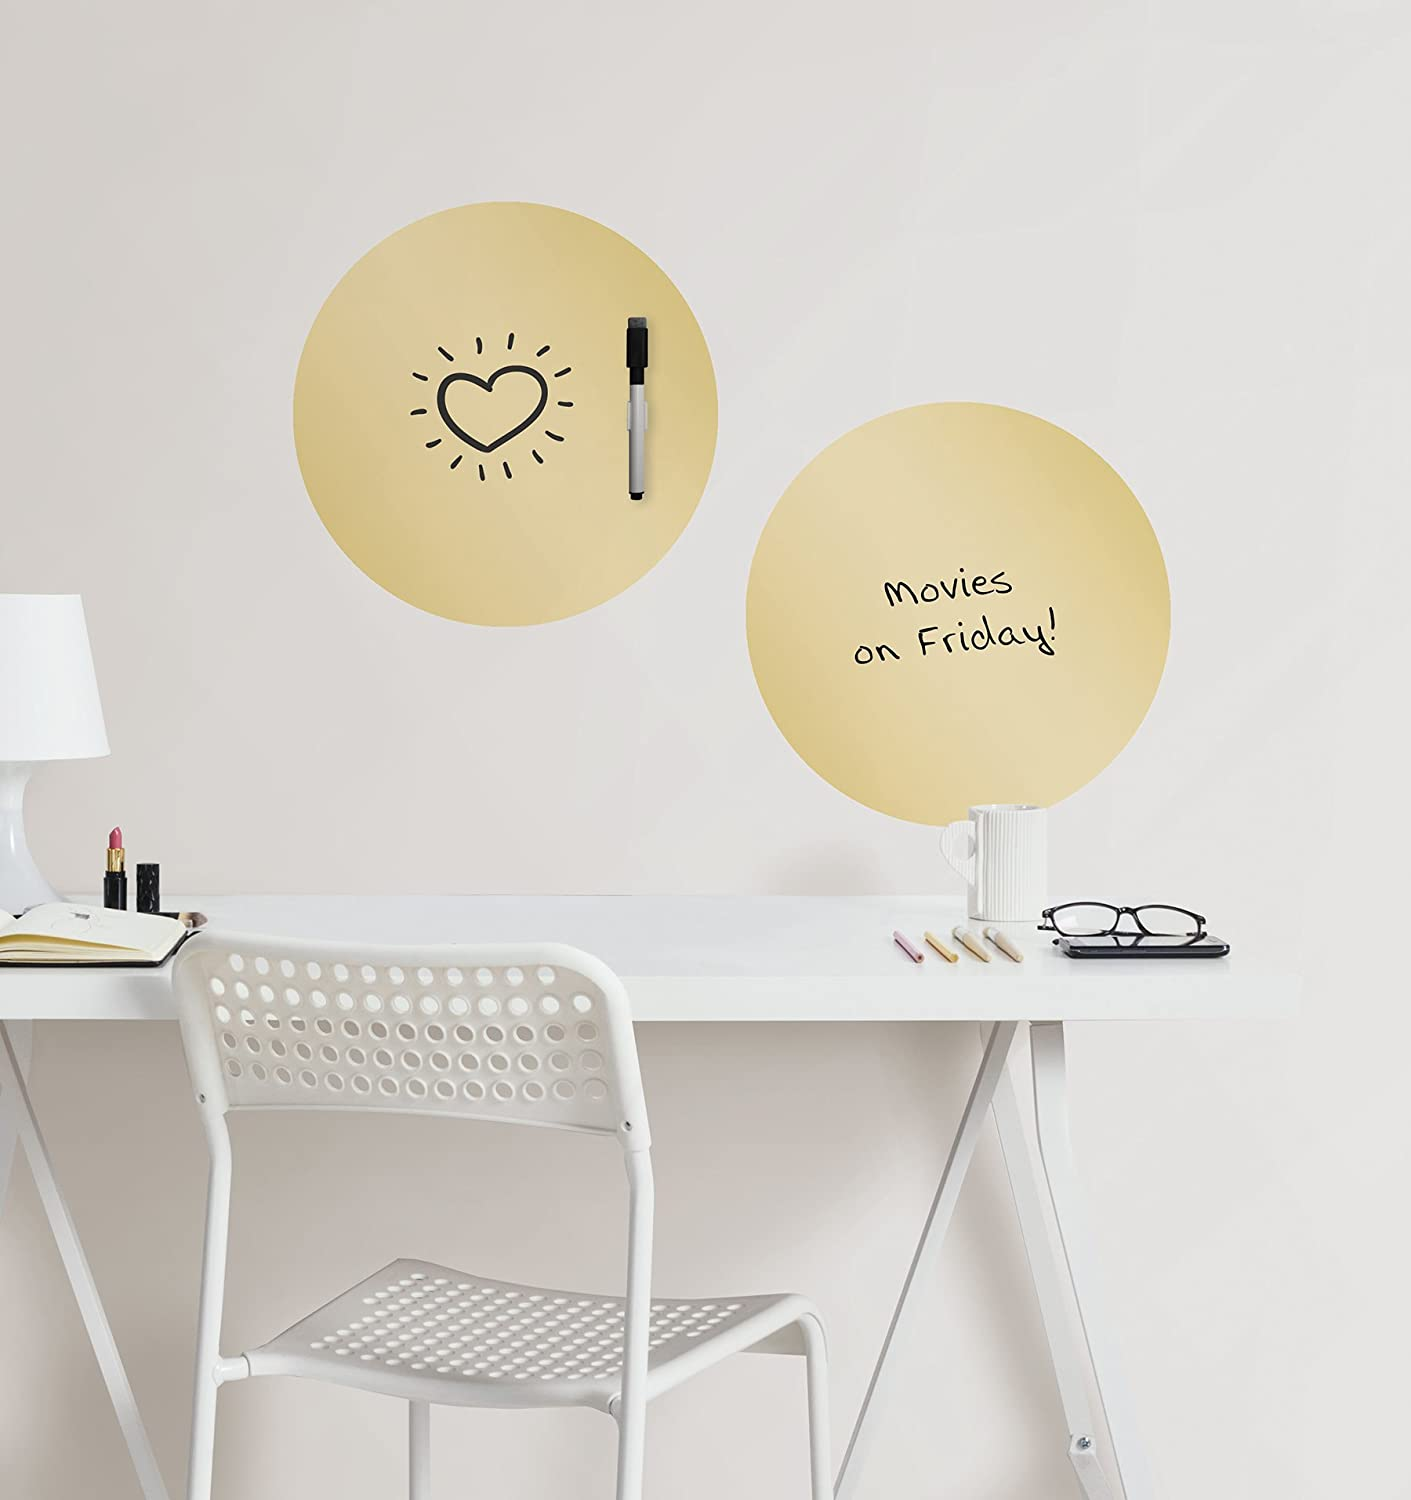 Wall Pops WPE2126 Gold Foil Dry Erase Dot Decals Metallic - - Amazon.com